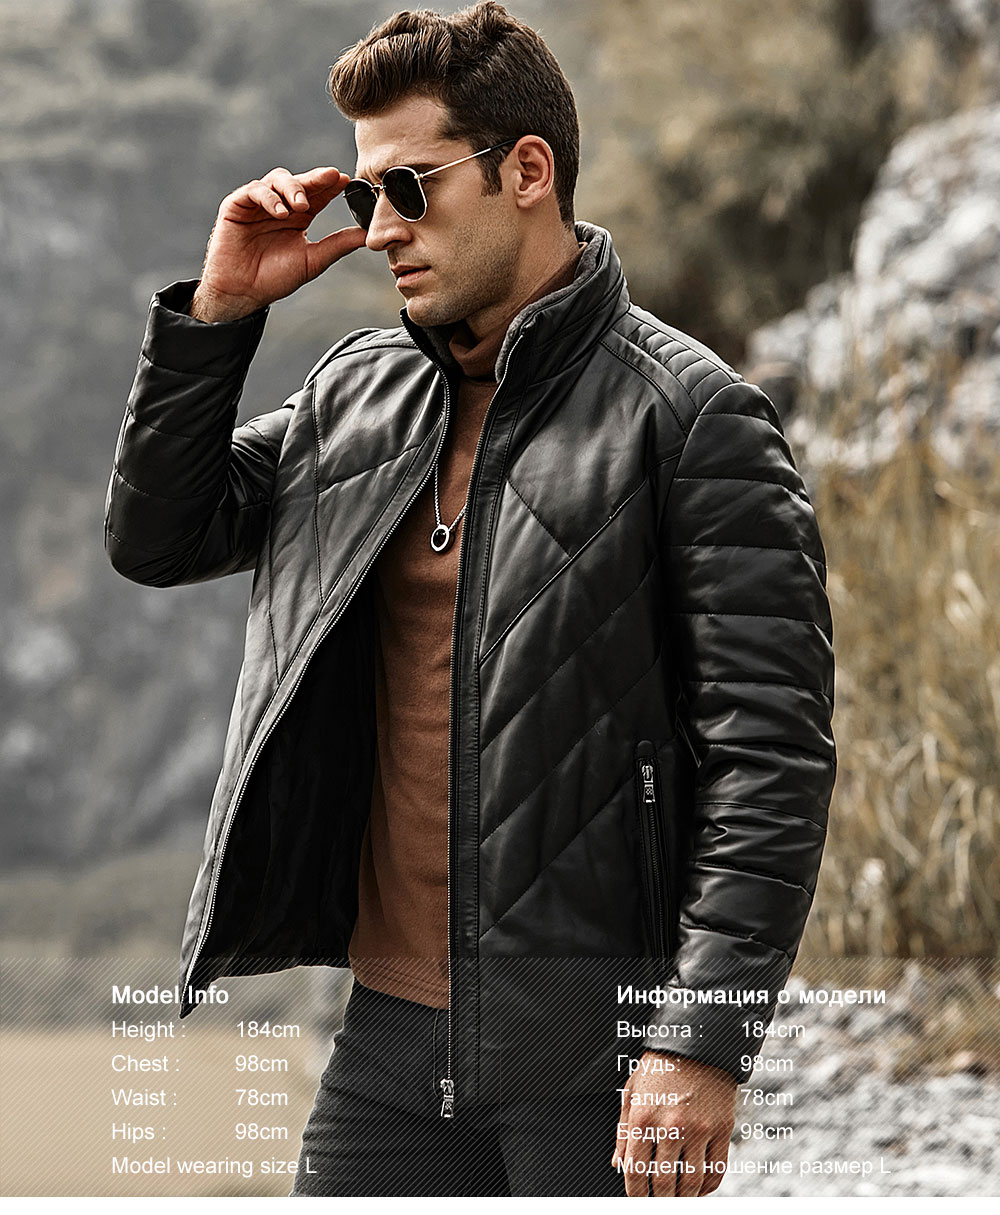 HTB1Wwb8FQyWBuNjy0Fpq6yssXXag FLAVOR Men's Real Leather Down Jacket Men Genuine Lambskin Winter Warm Leather Coat with Removable Standing Sheep Fur Collar